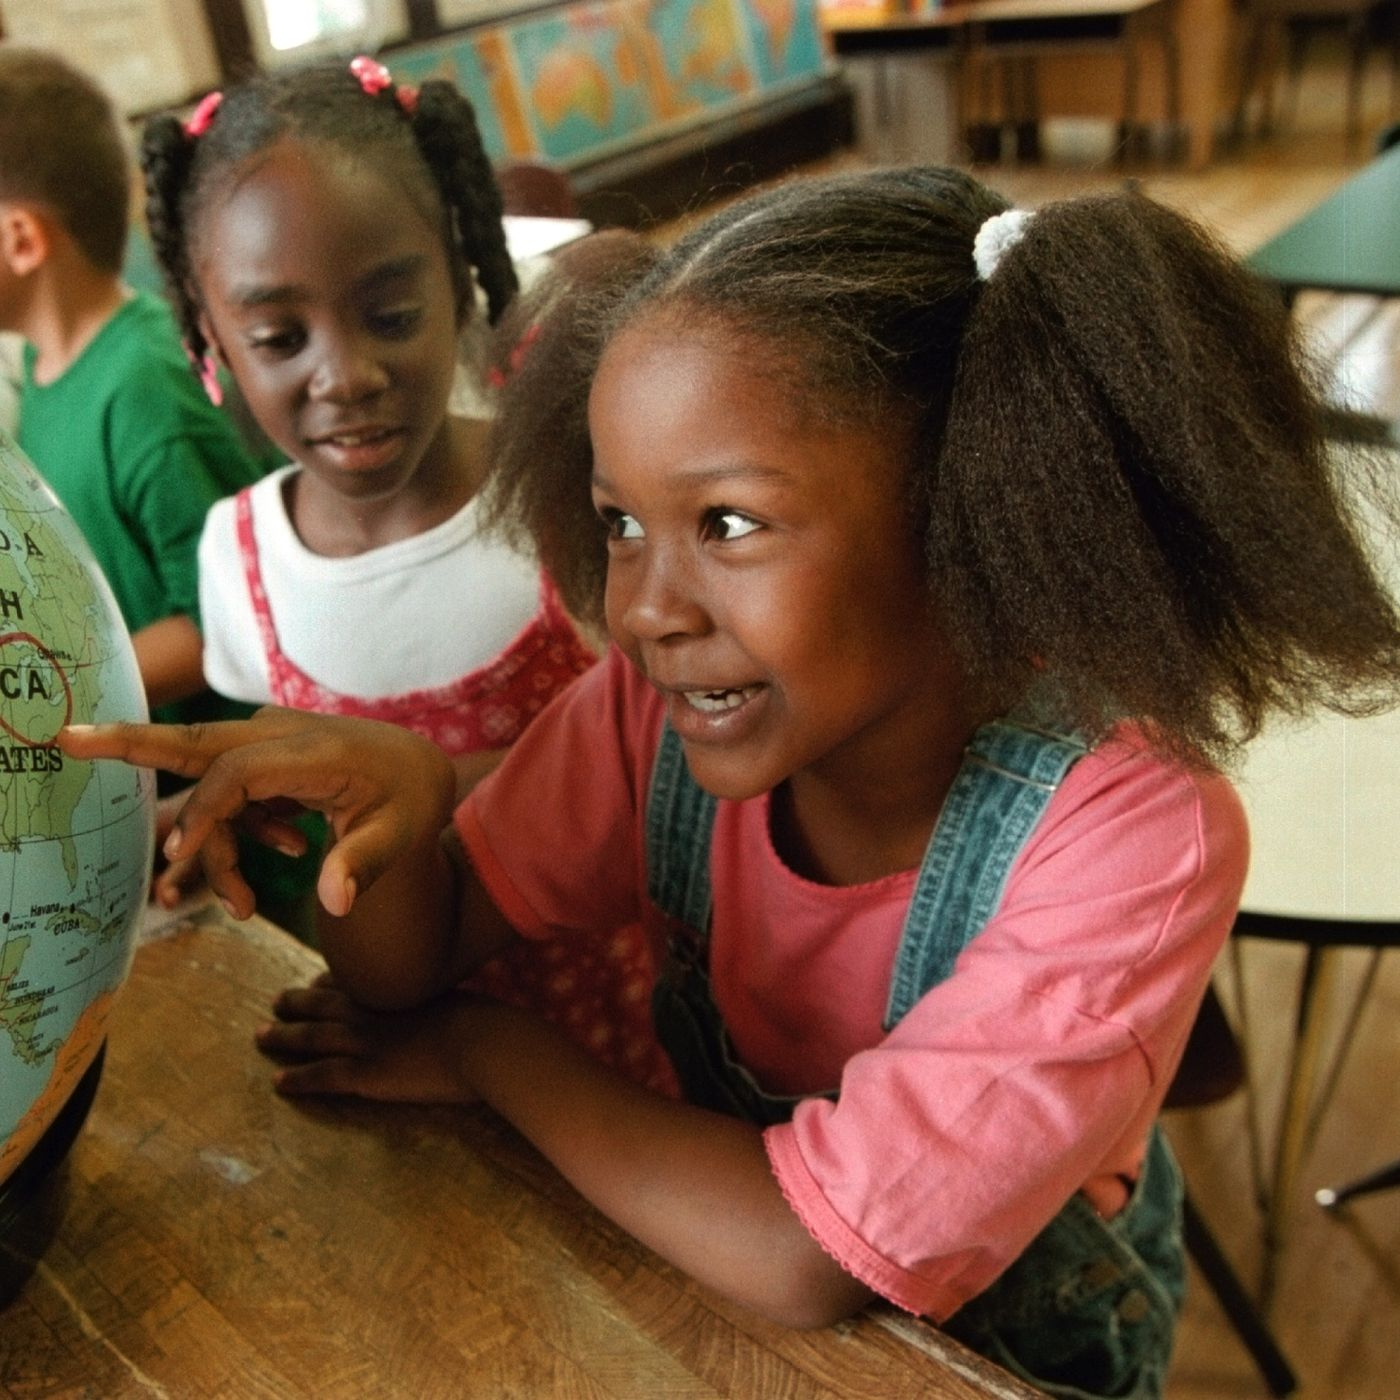 A New Study Shows Even 5 Year Olds Cant Escape Racism